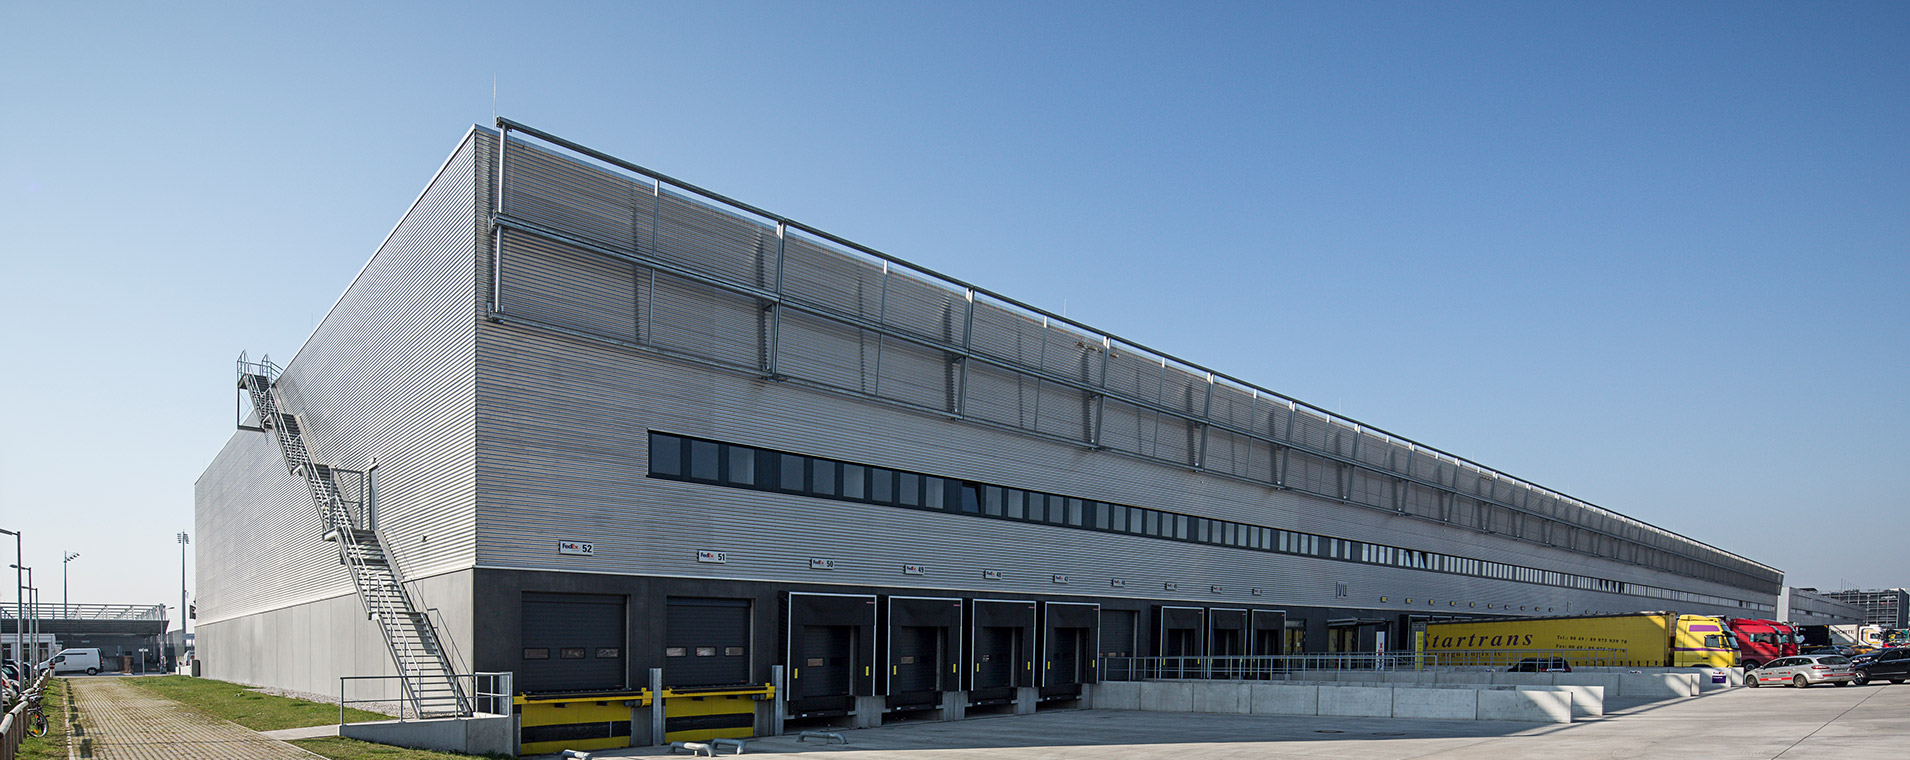 Logistik architektur Airpot Munich